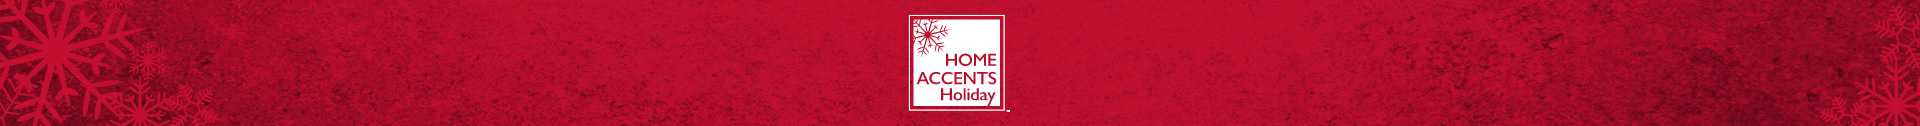 Home Accents Holiday Brand Banner